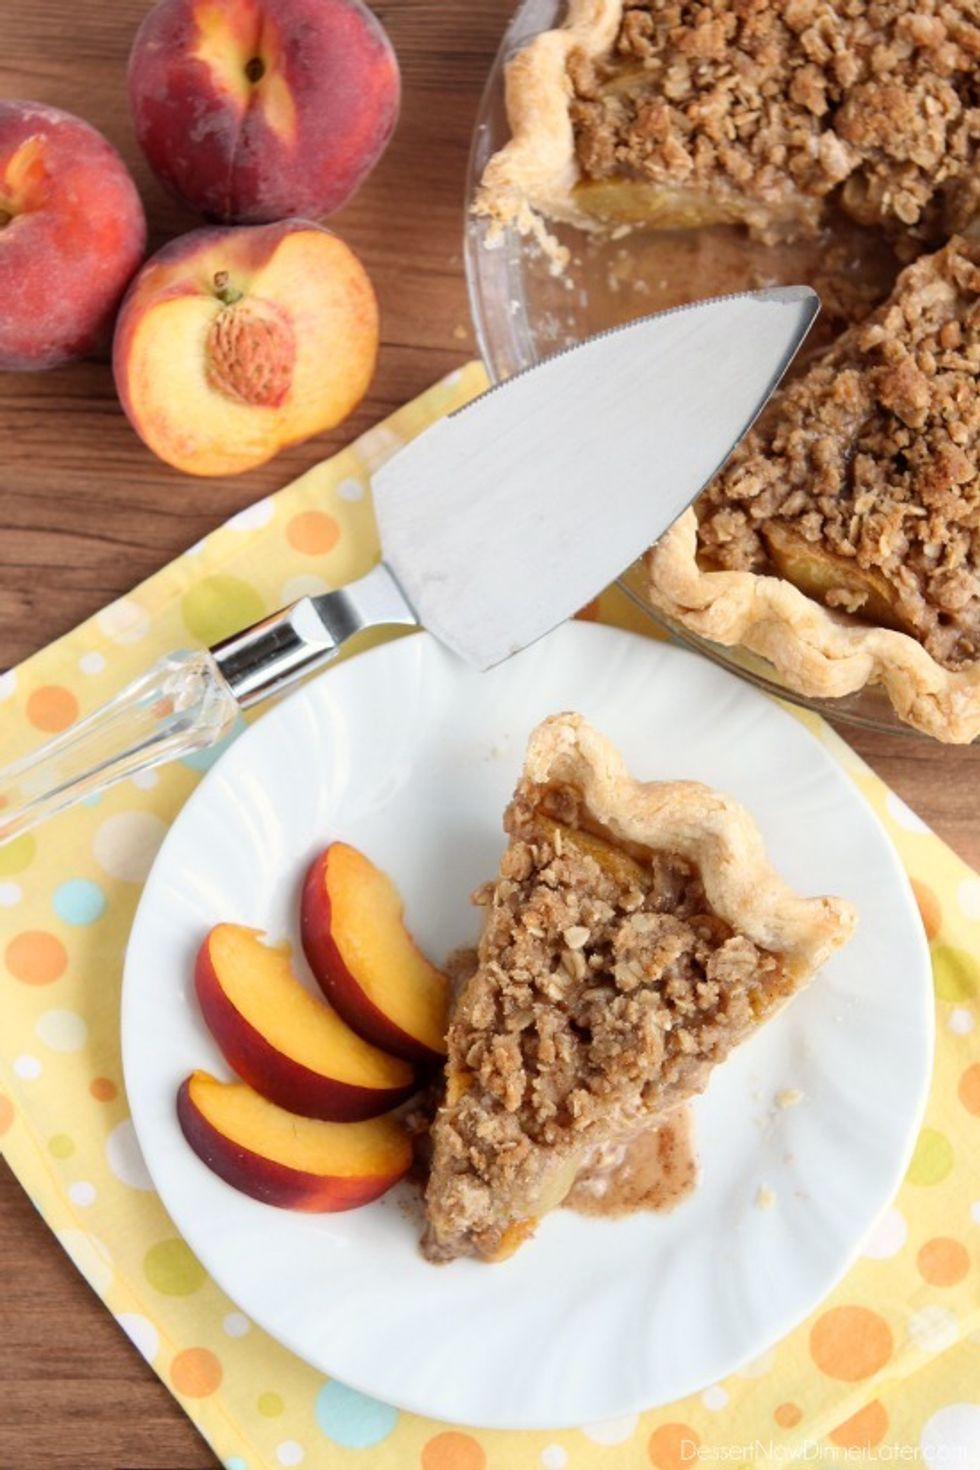 Peach Pie with Streusel Topping